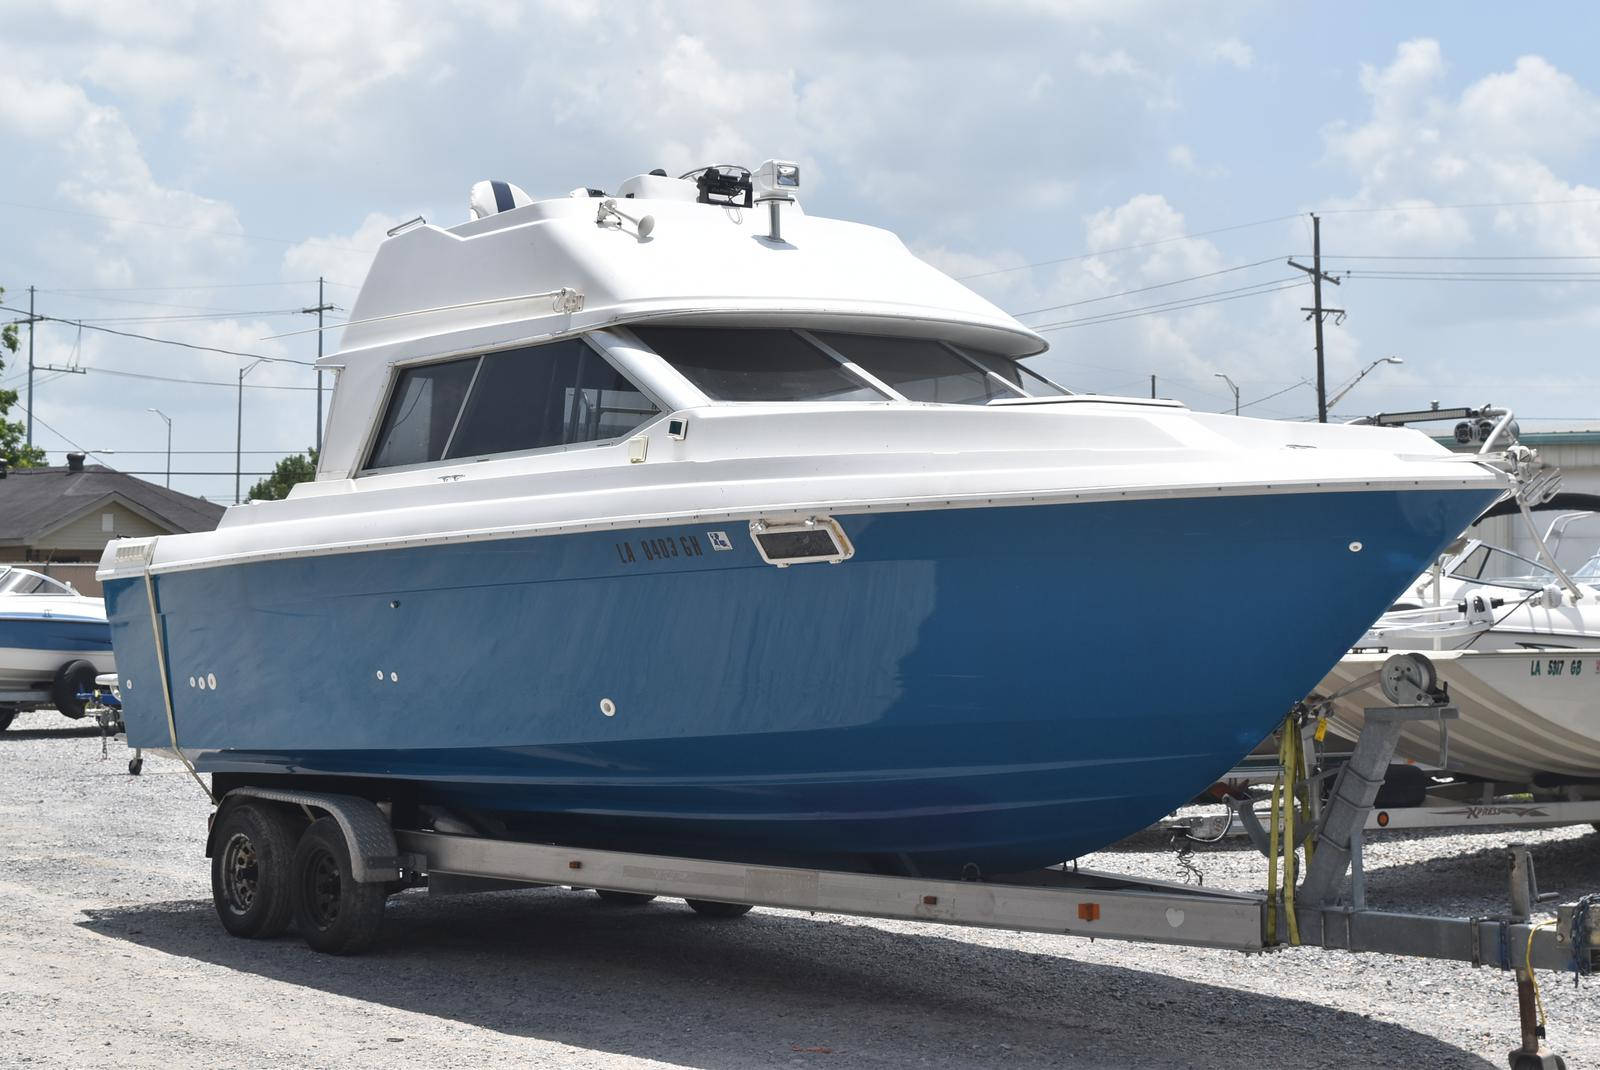 Inventory from Venture Trailer, Inc , Bayliner and Stamas The Boat